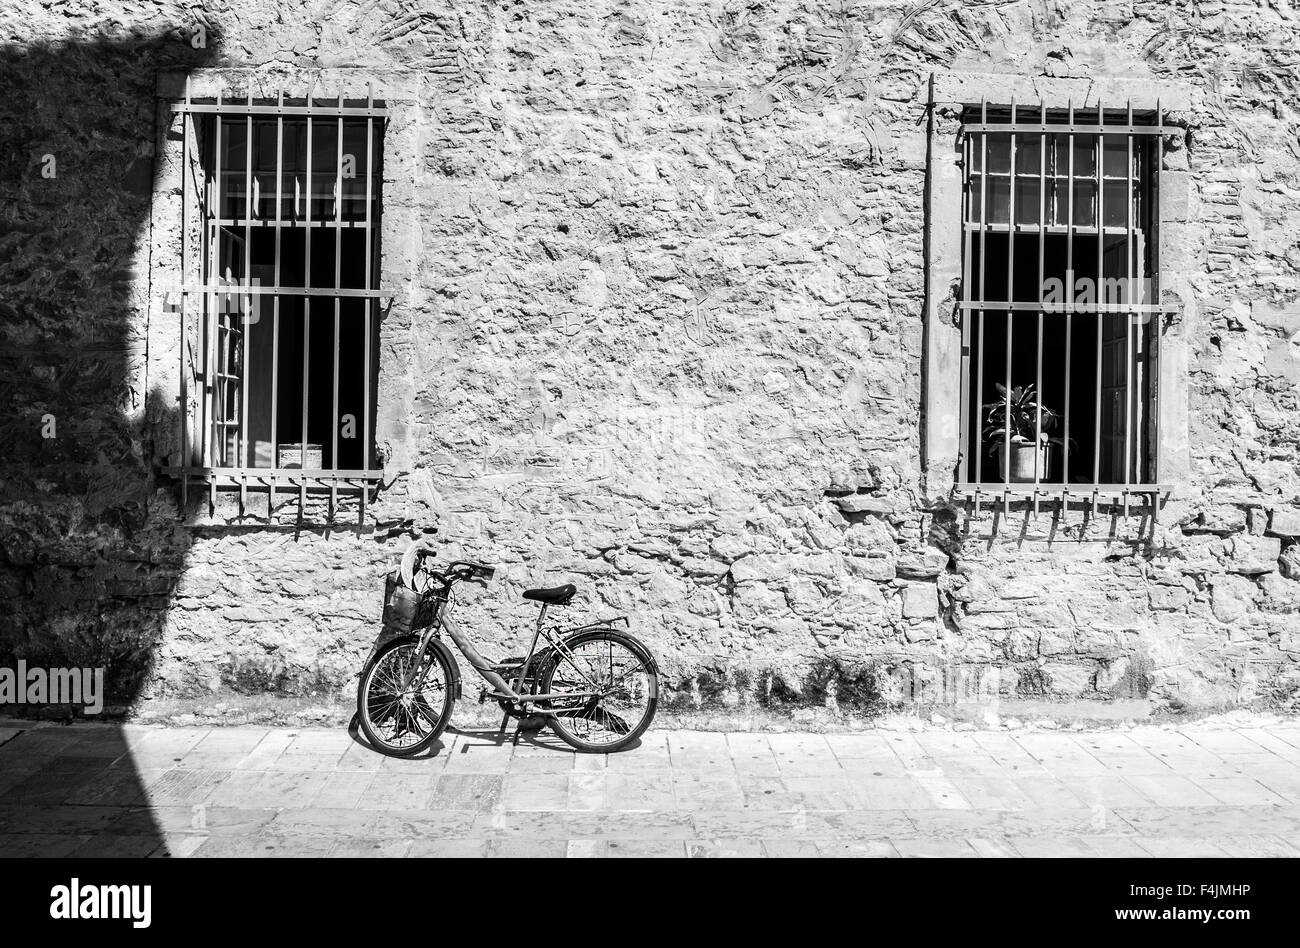 Bicycle leaning against house wall. Black and white photo - Stock Image